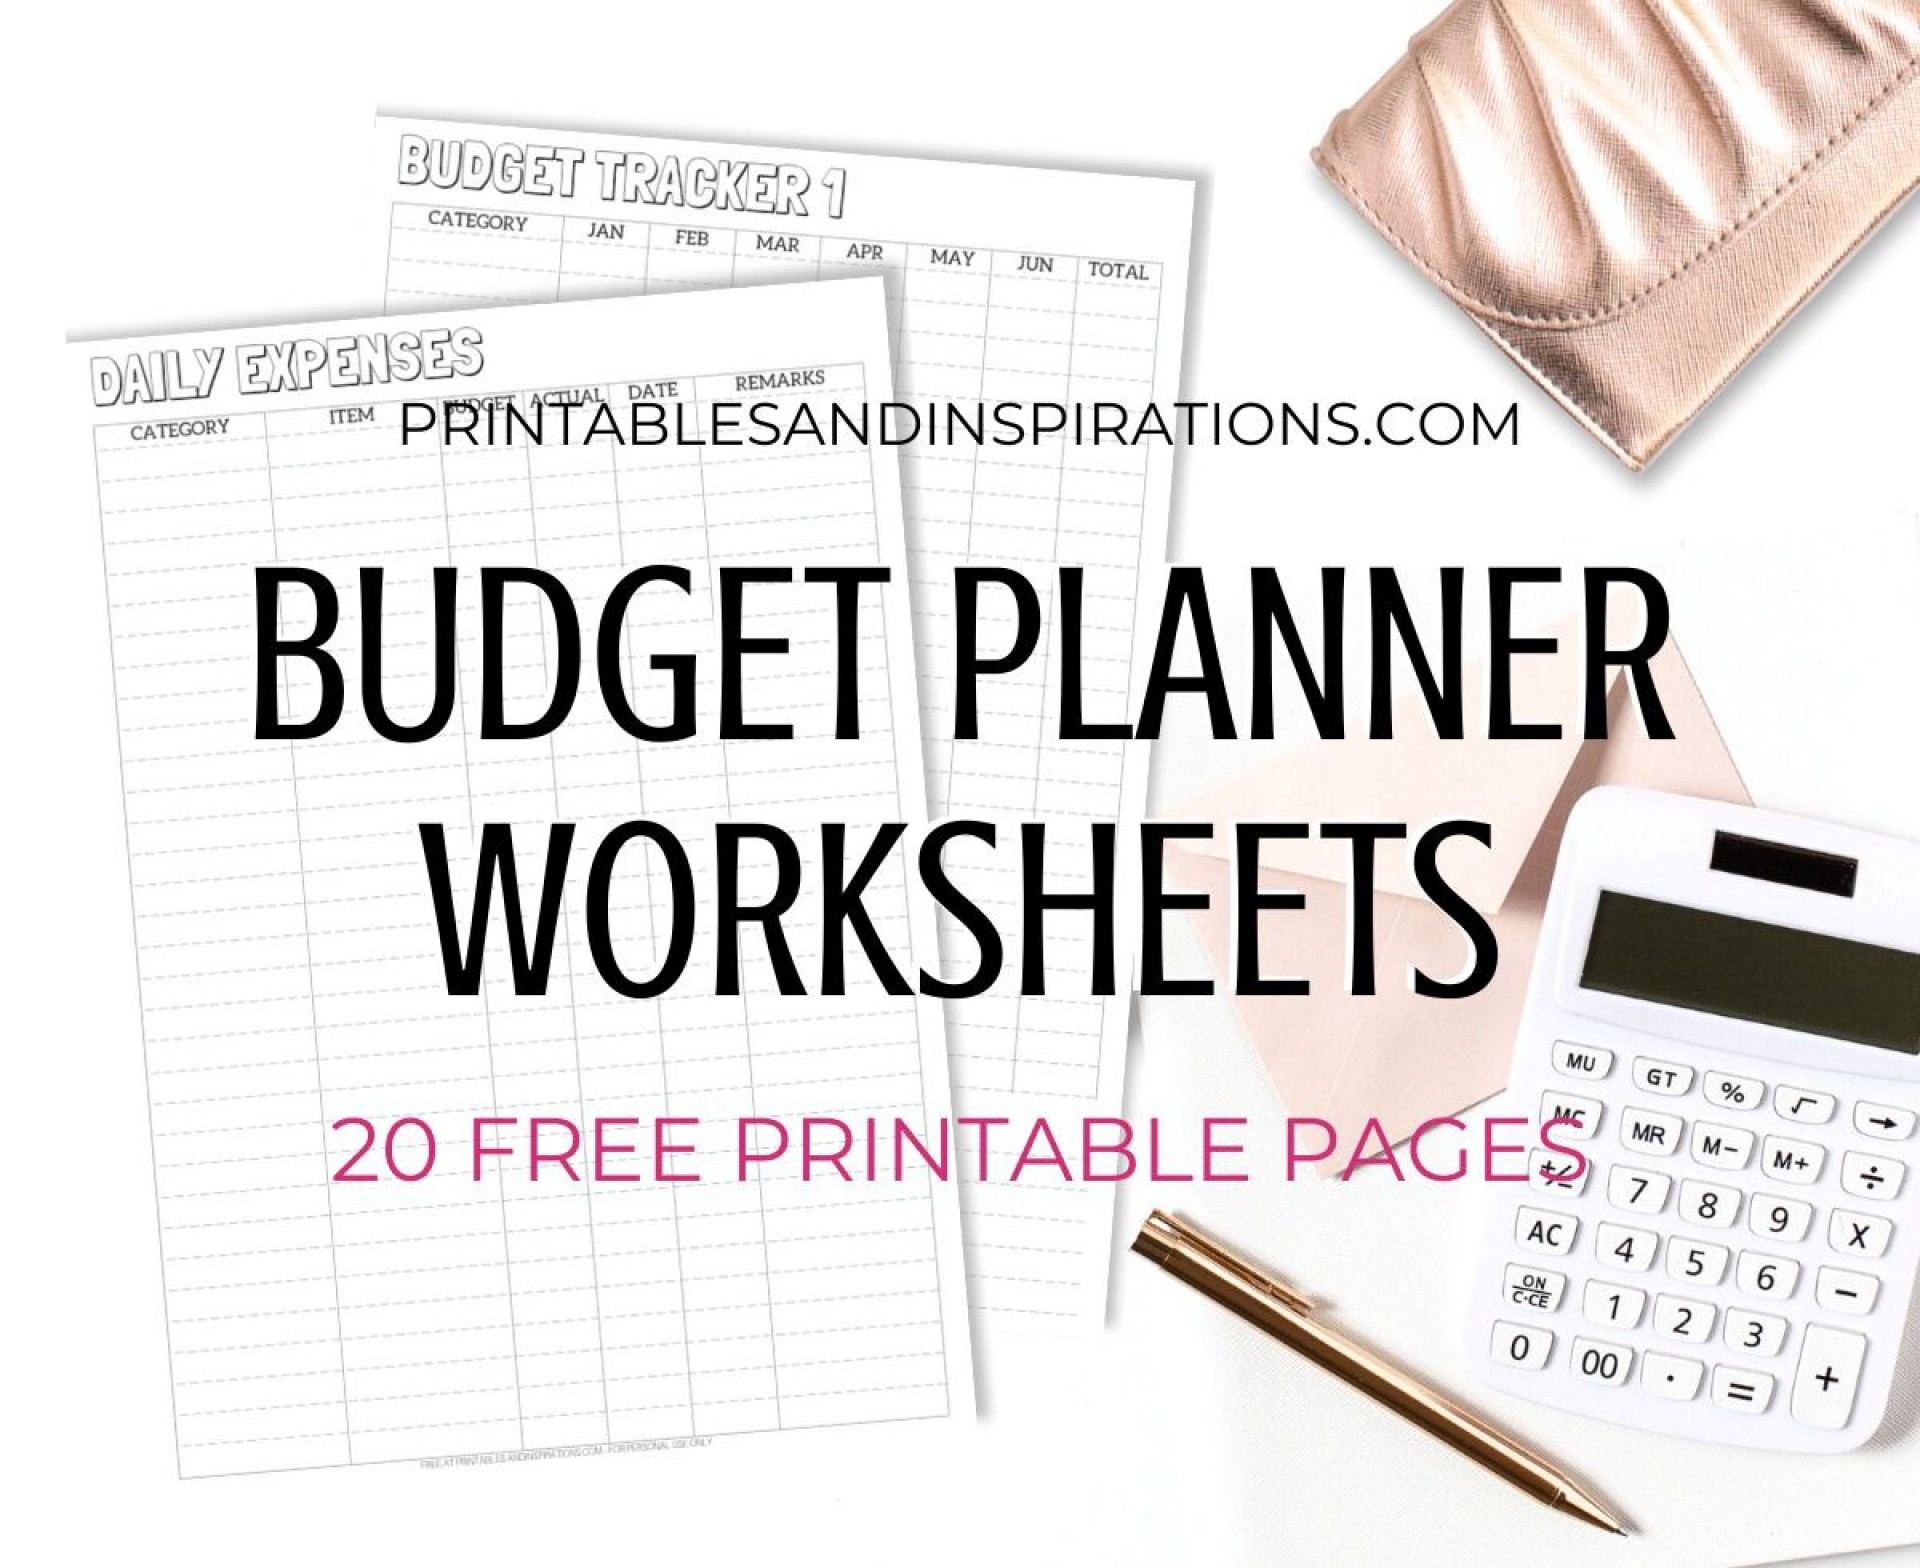 003 Astounding Free Printable Home Budget Form Image  Spreadsheet Template1920